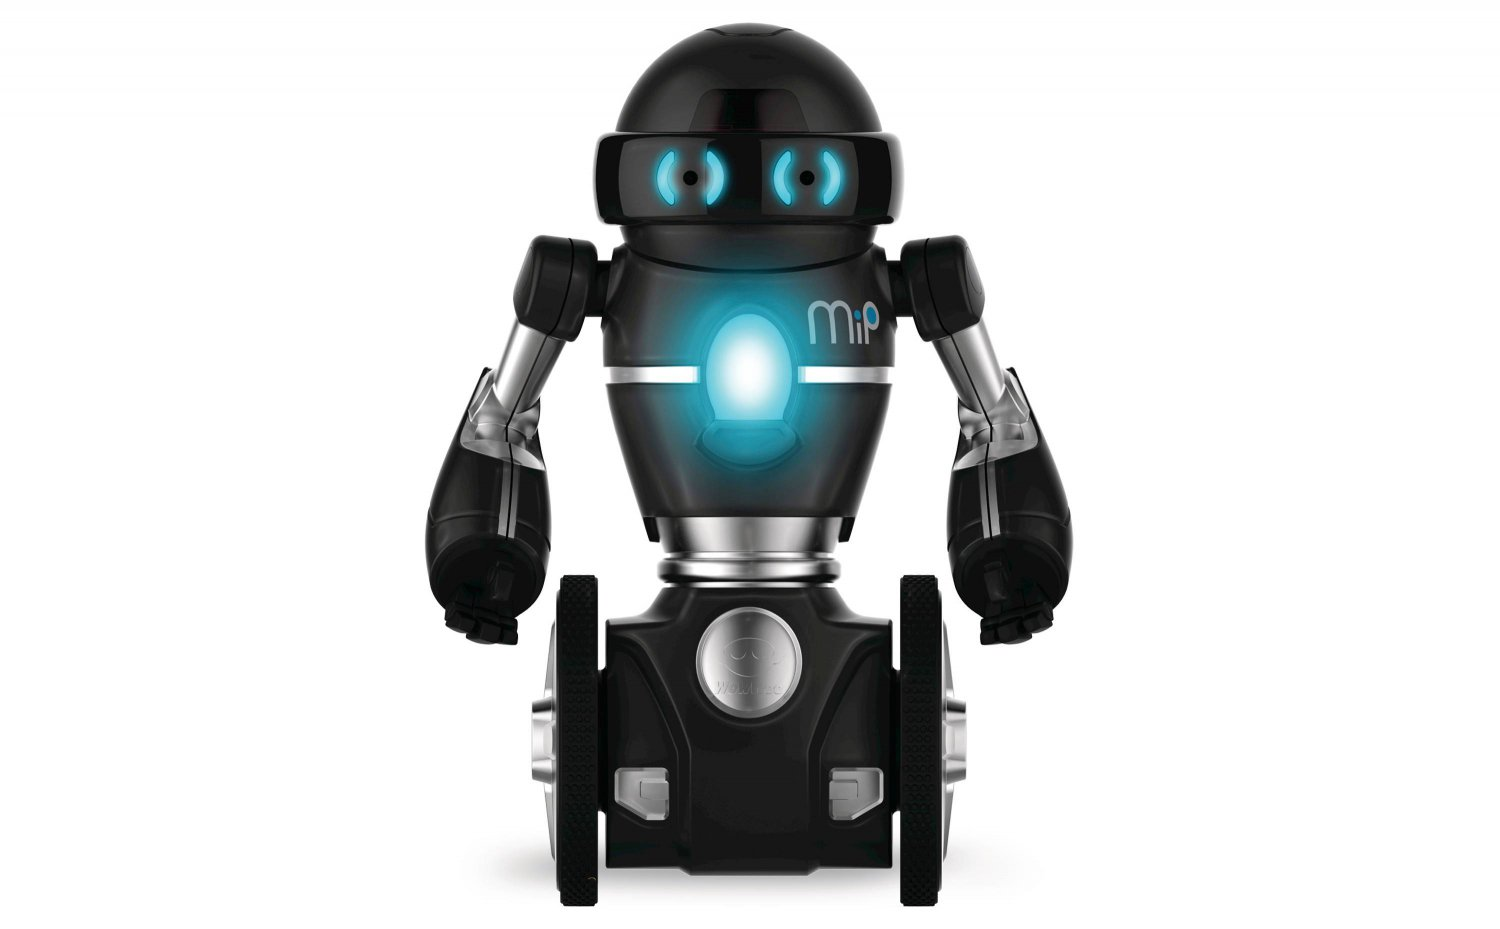 WowWee MiP Robot RC Robot Ages 8+ Black Toy Boys Girls Fun Happy Gift Play